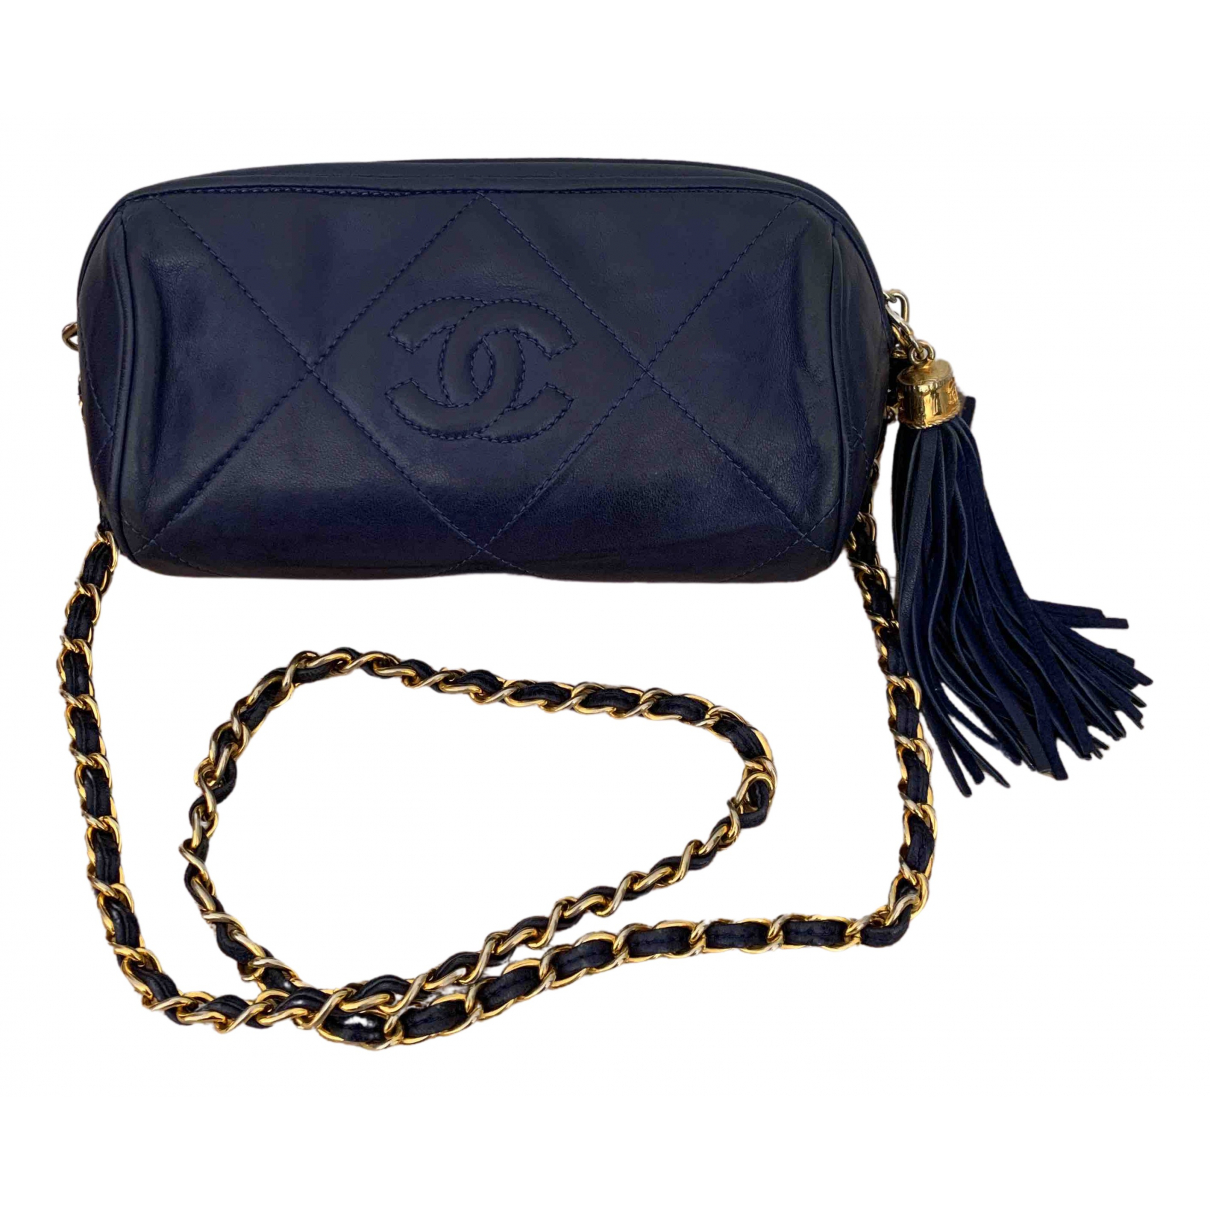 Chanel N Navy Leather Clutch bag for Women N